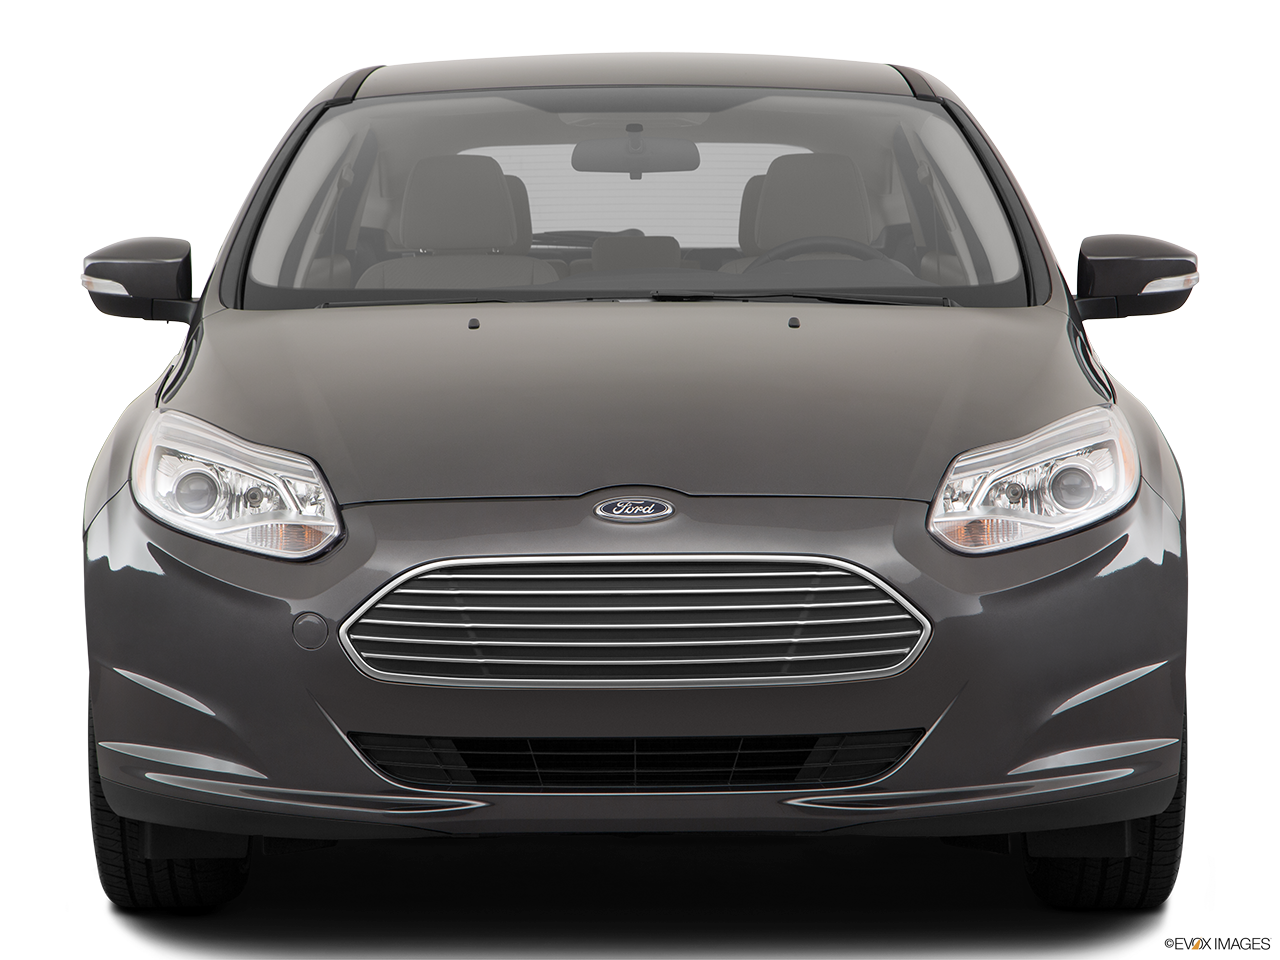 Front view of the Ford Focus Electric